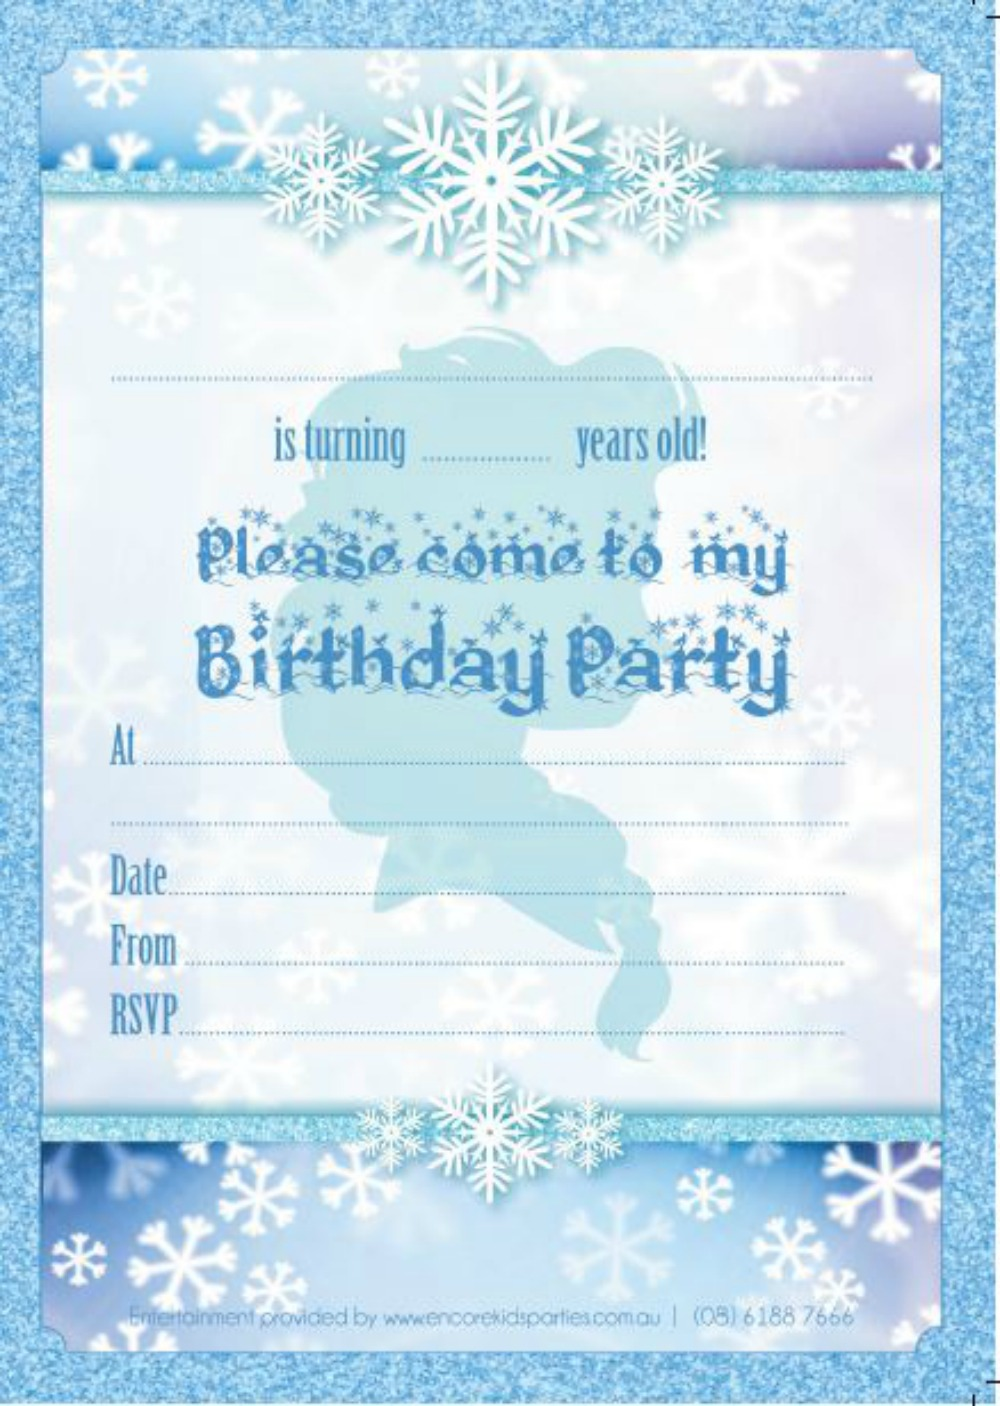 image for Snow Party Invitation